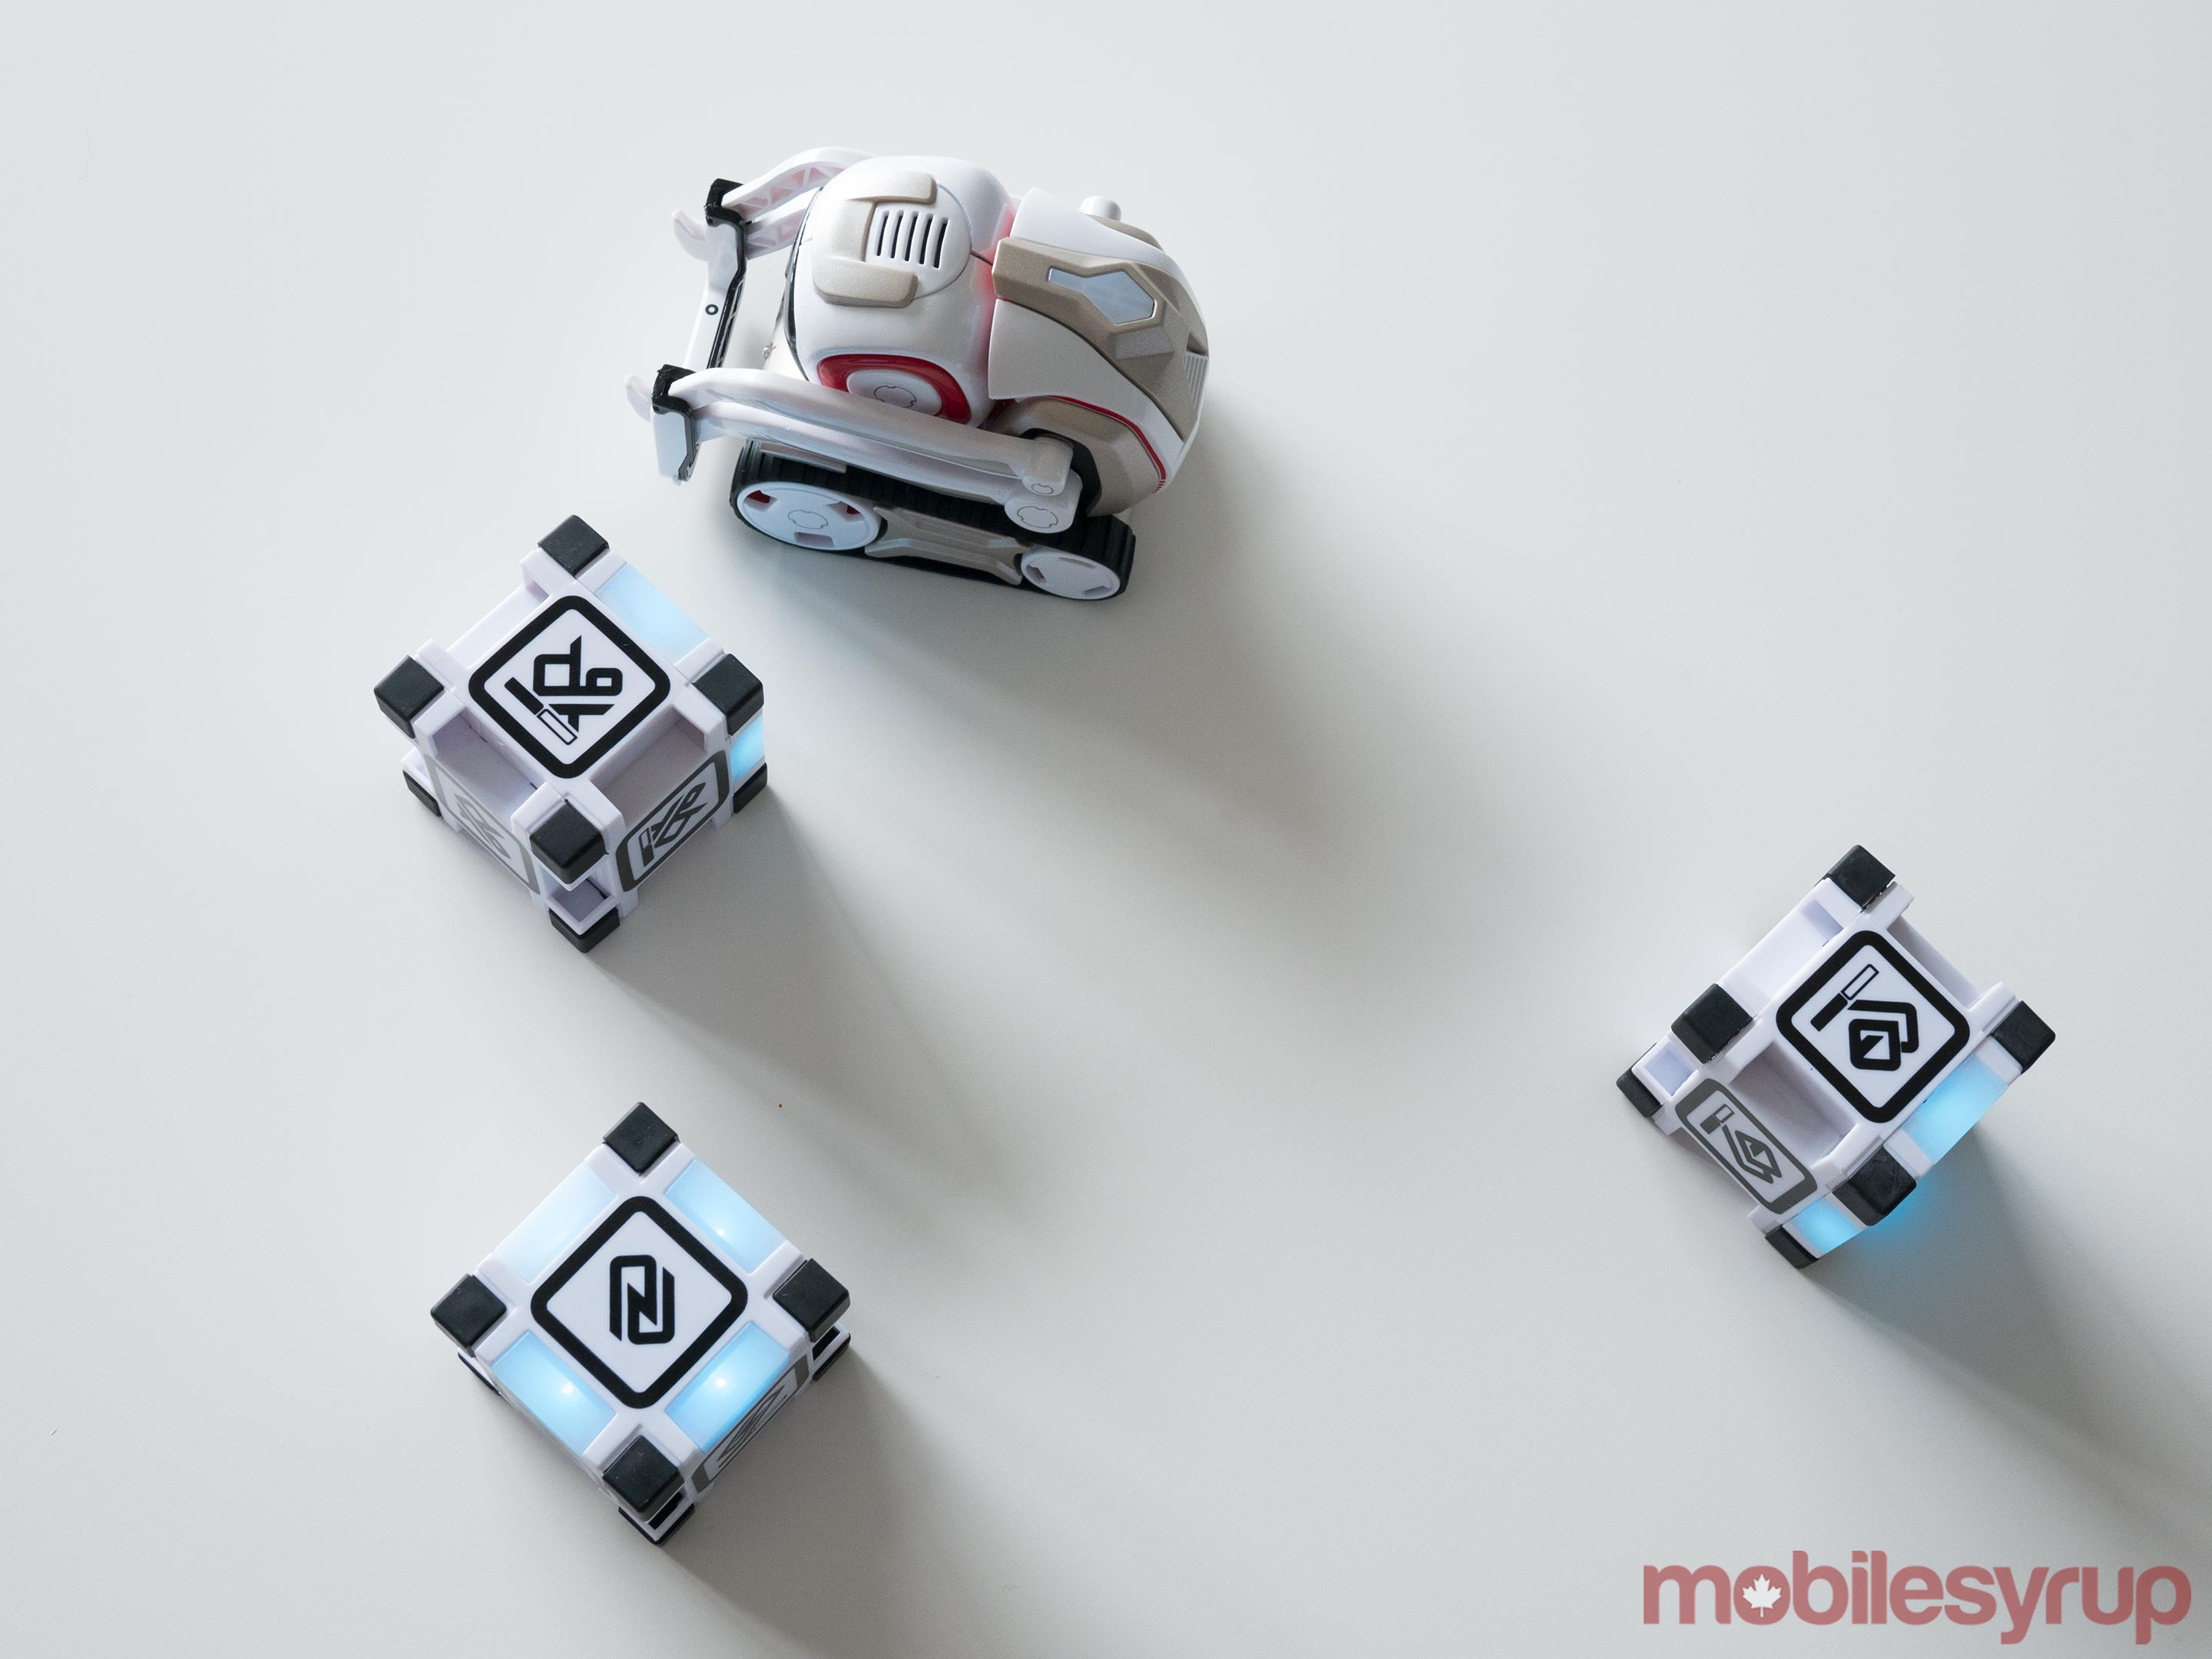 Cozmo playing with cubes